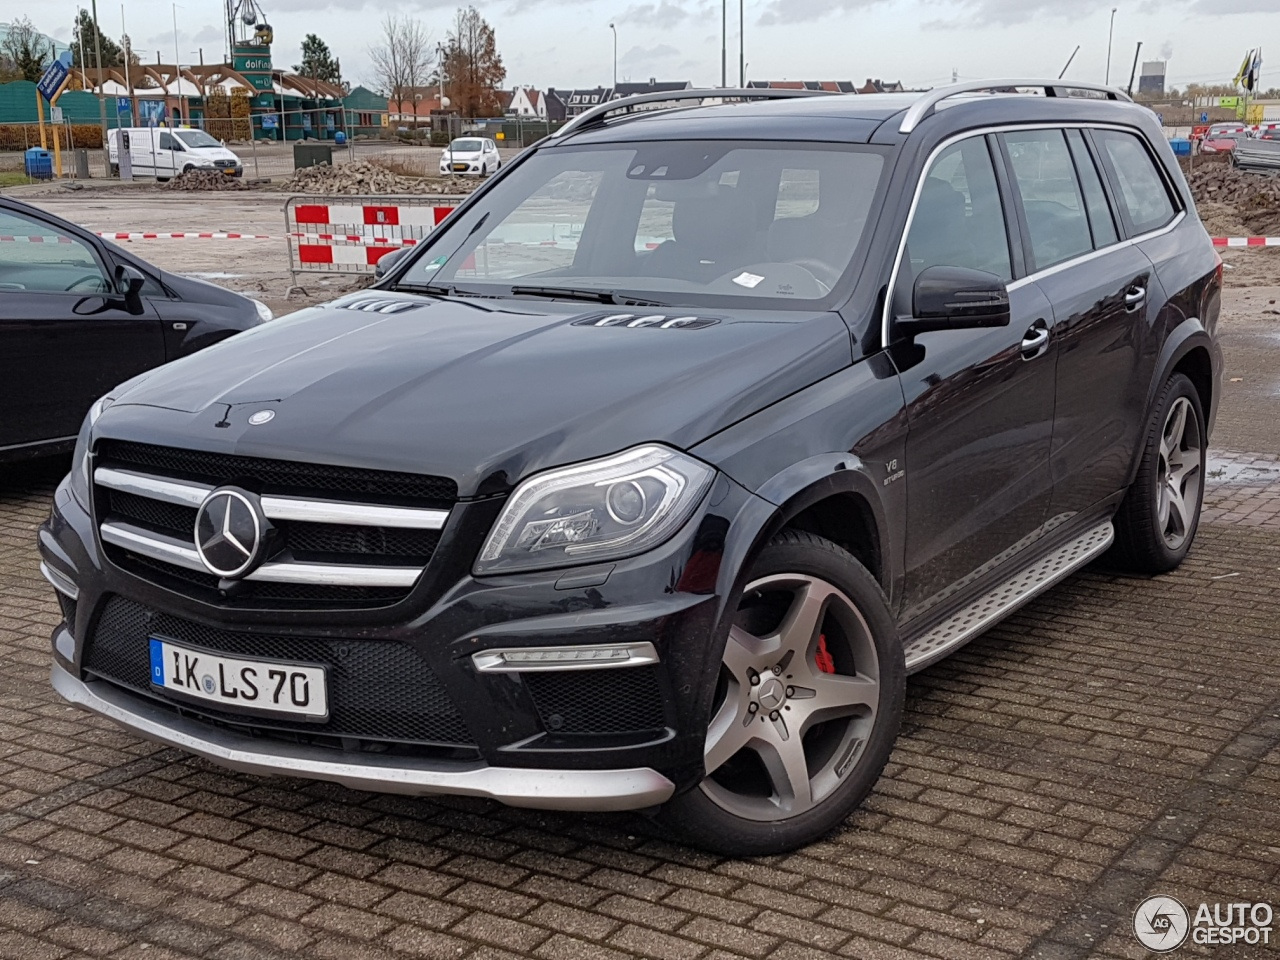 Mercedes benz gl 63 amg x166 17 november 2016 autogespot for Mercedes benz gl amg for sale